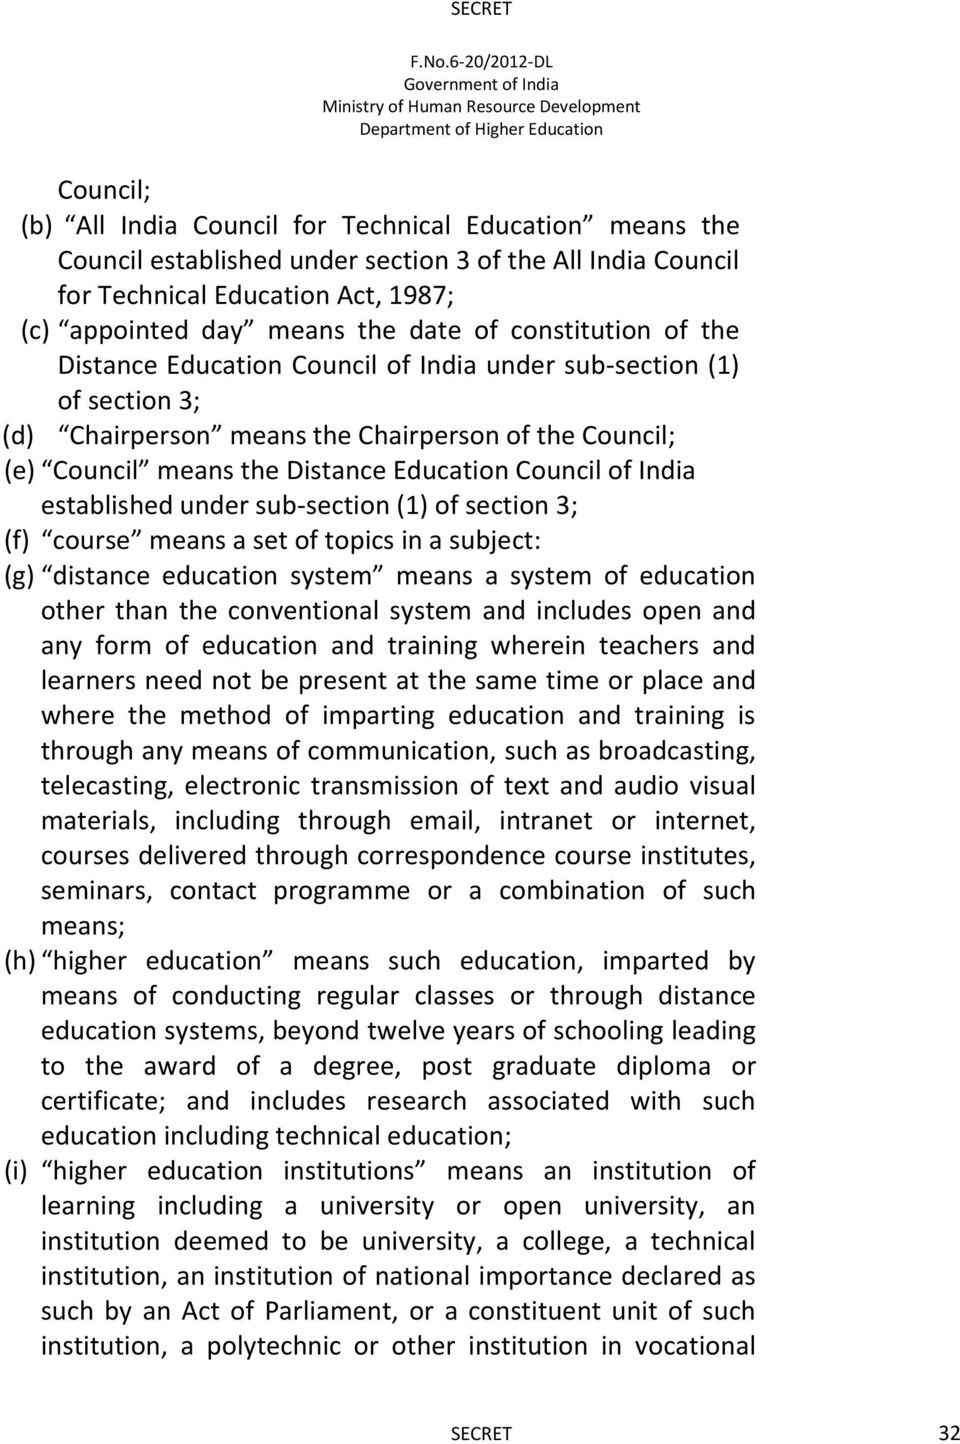 India established under sub-section (1) of section 3; (f) course means a set of topics in a subject: (g) distance education system means a system of education other than the conventional system and